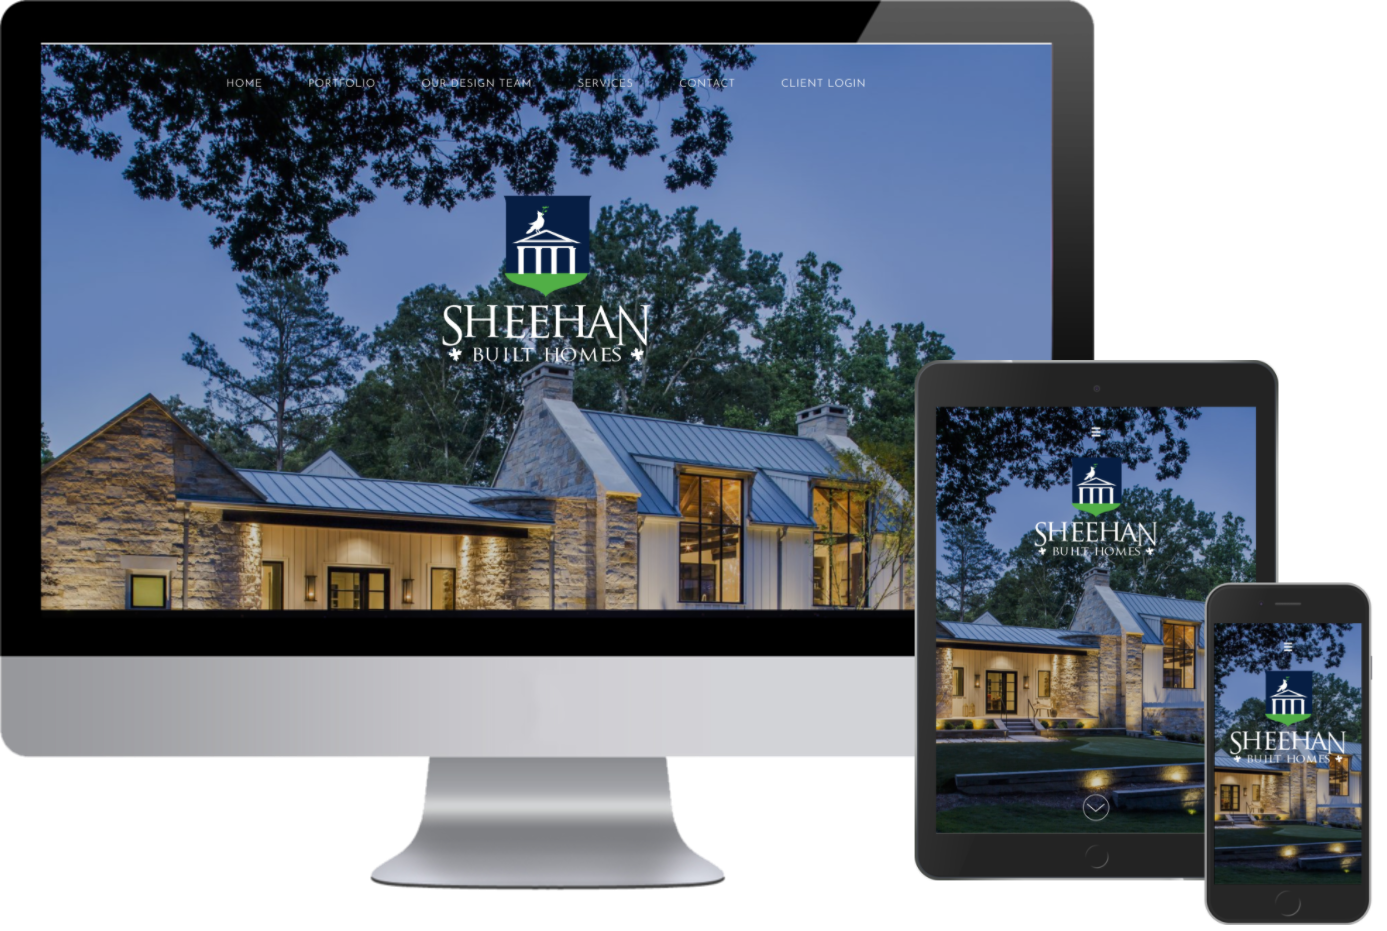 Sheehan Built Homes now have a responsive website design from Greenstone Media